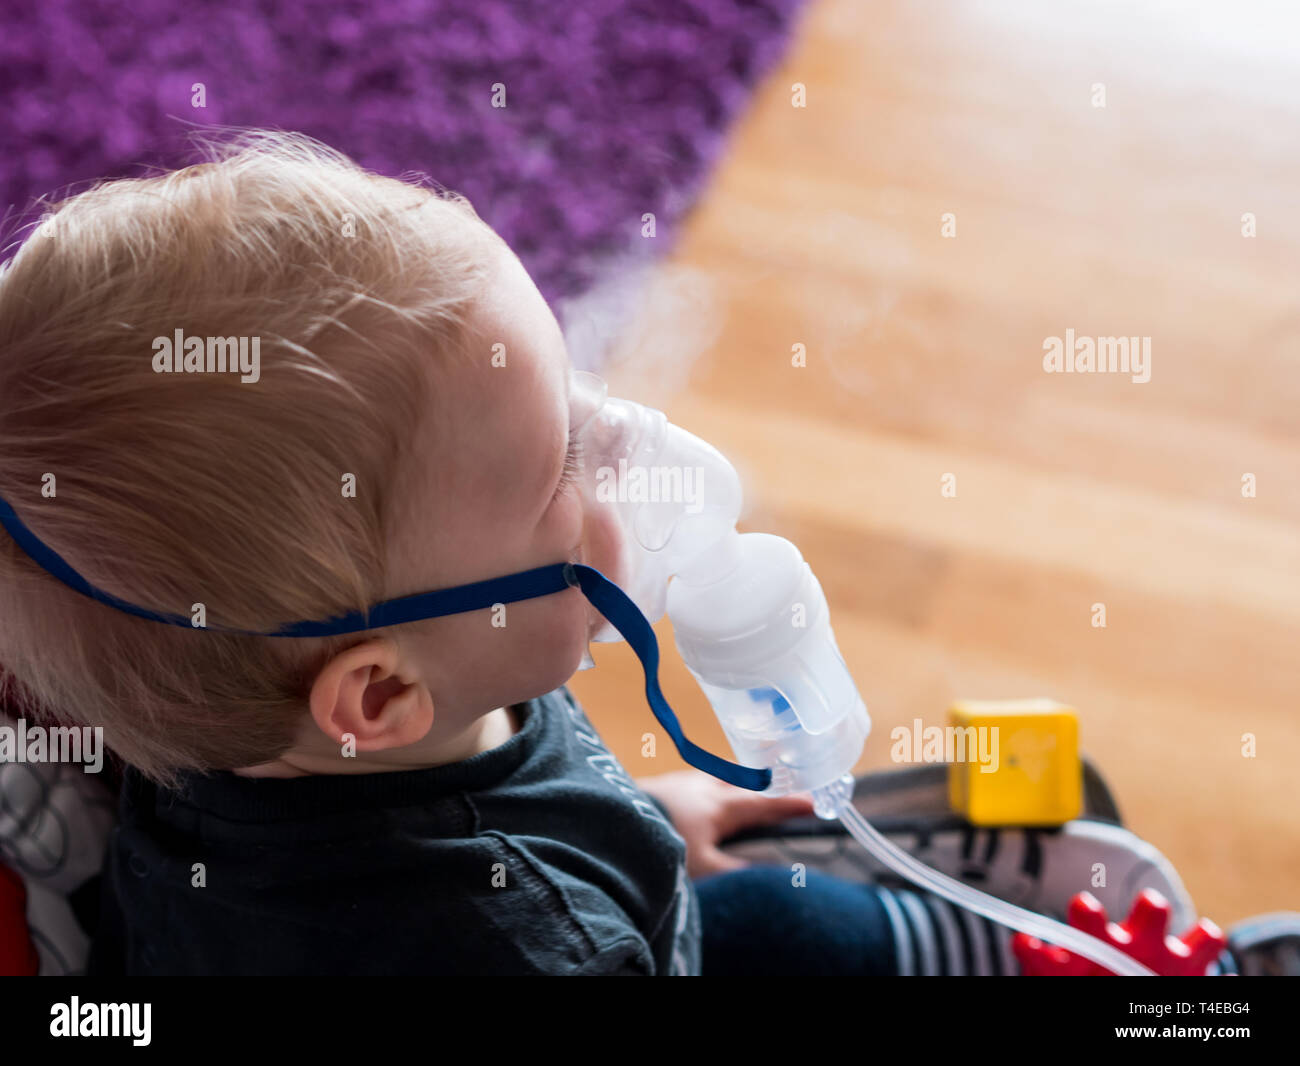 Caucasian boy with oxygen mask at home inhaling - Stock Image